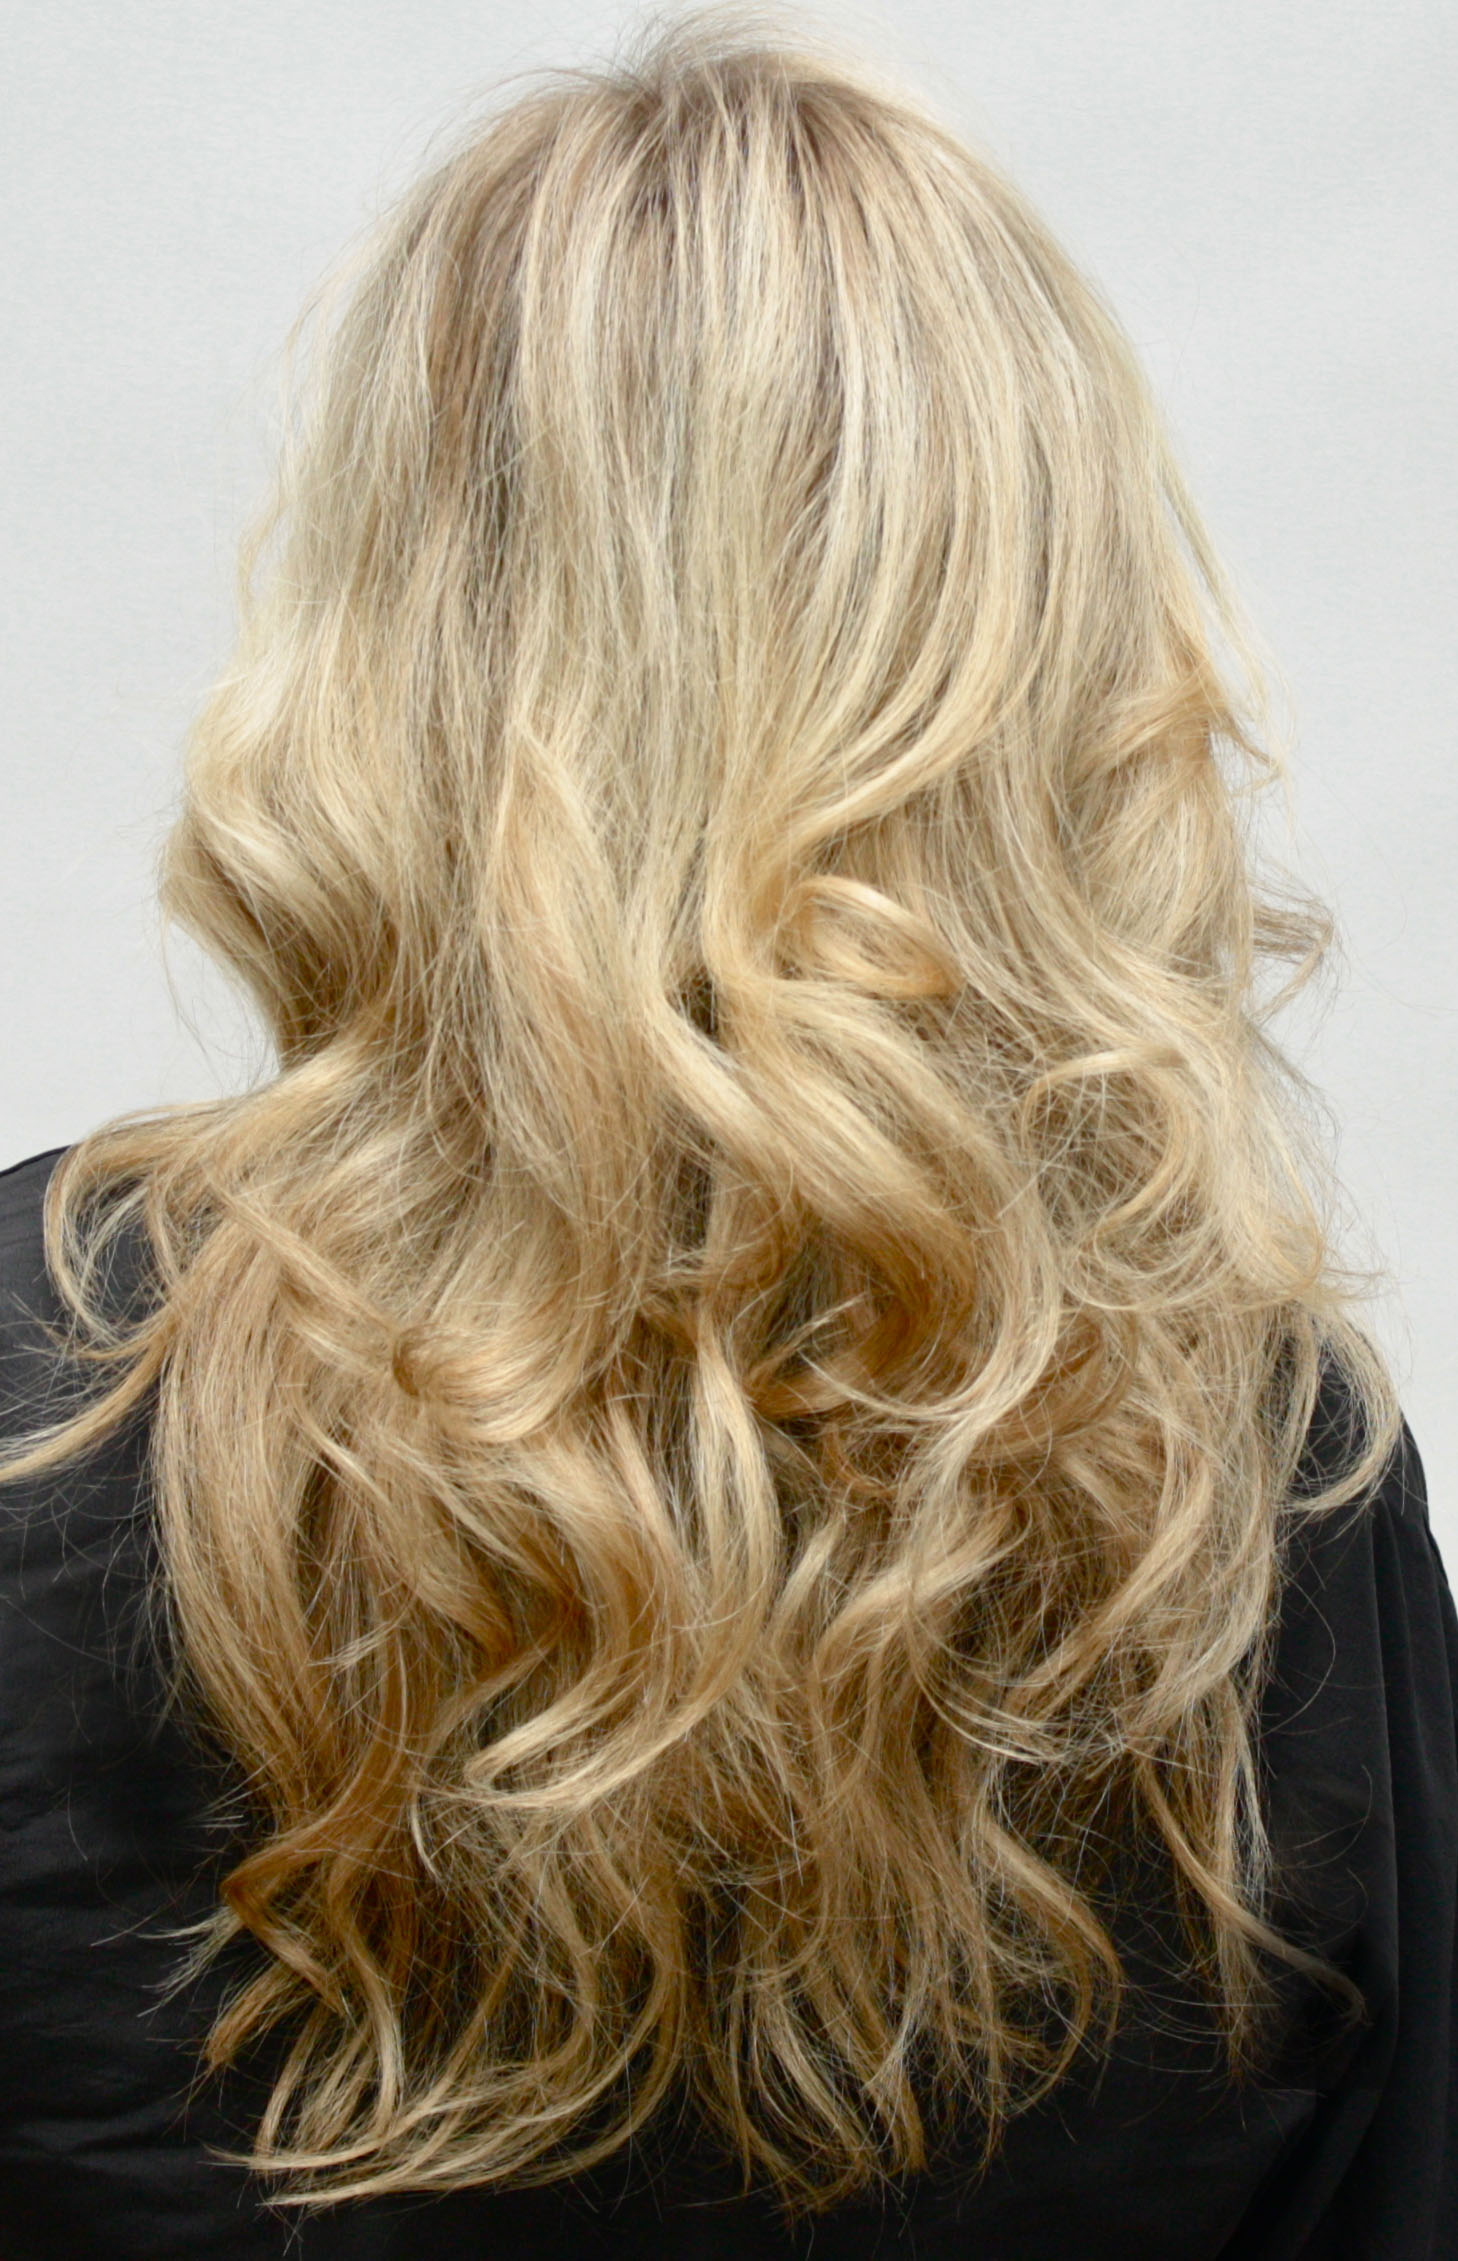 How To Curl Hair With A Flat Iron Siggershairdresserss Blog